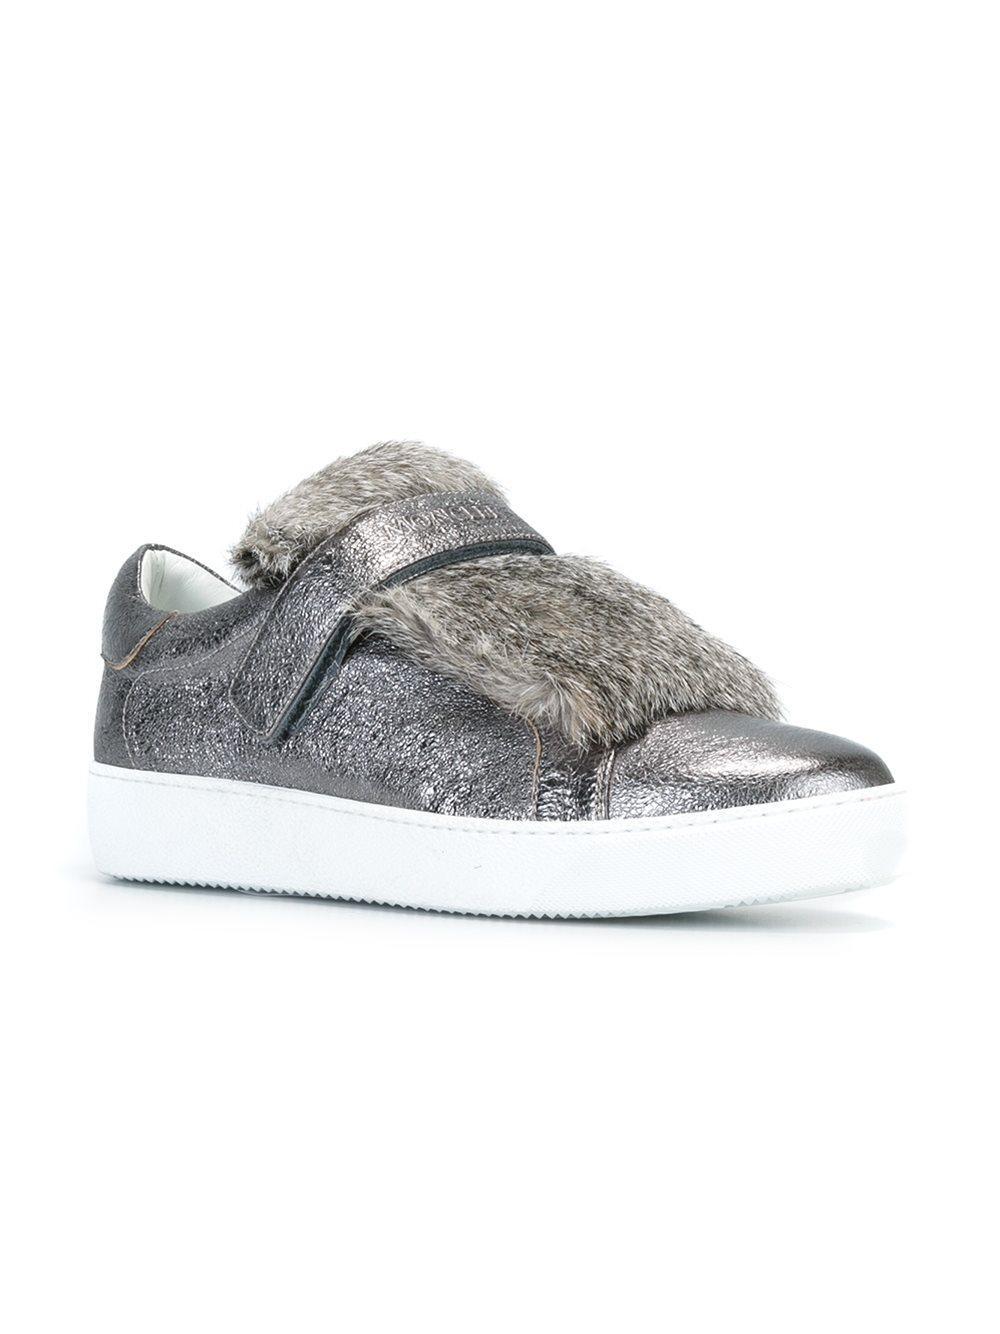 Moncler Leather Lucie Sneakers in Grey (Grey)